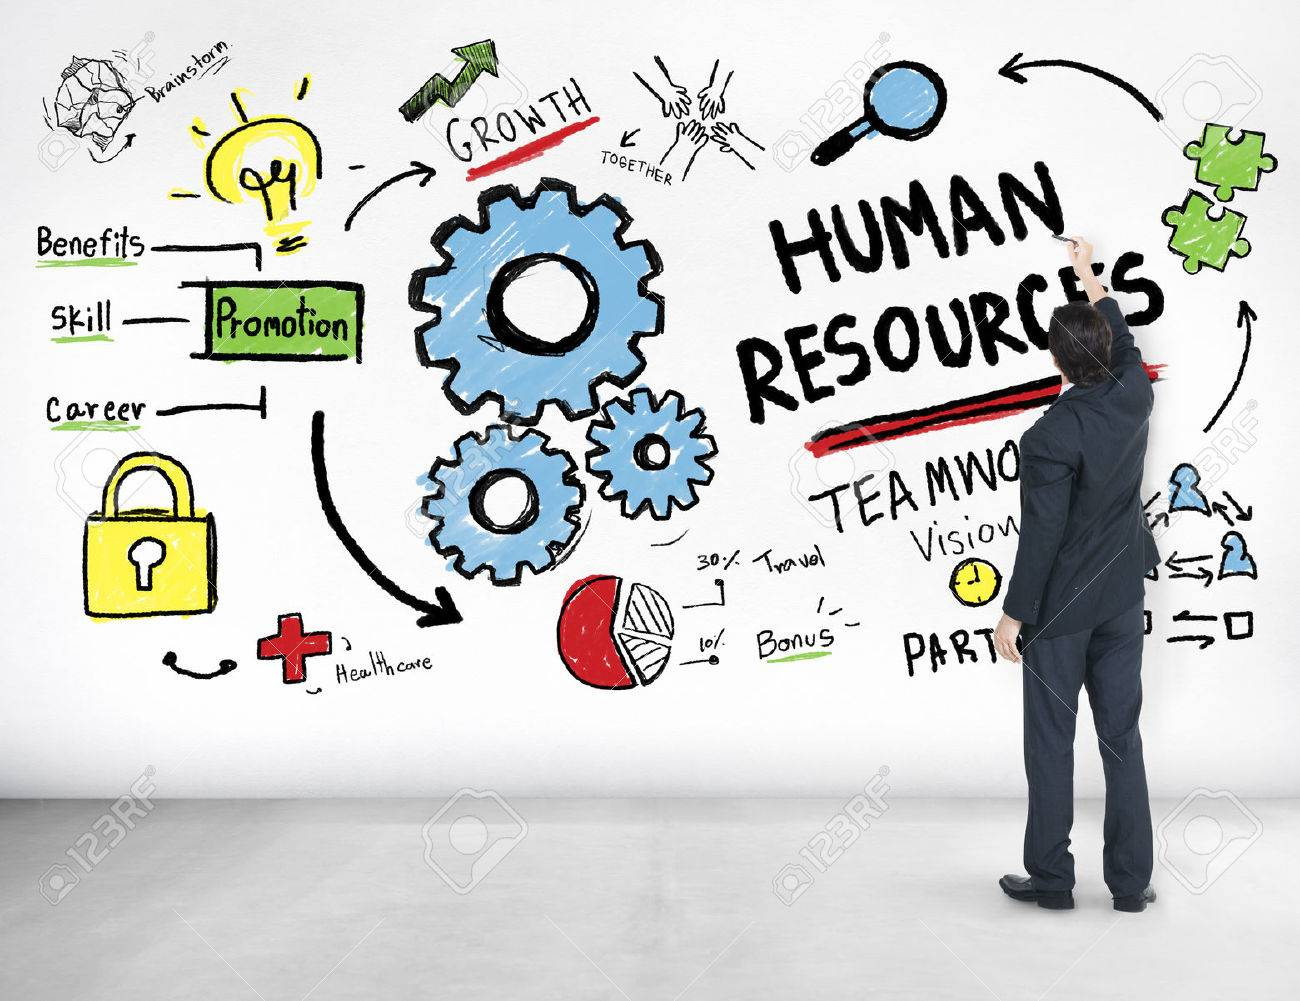 human resources employment job teamwork businessman ideas concept human resources employment job teamwork businessman ideas concept stock photo 49519283